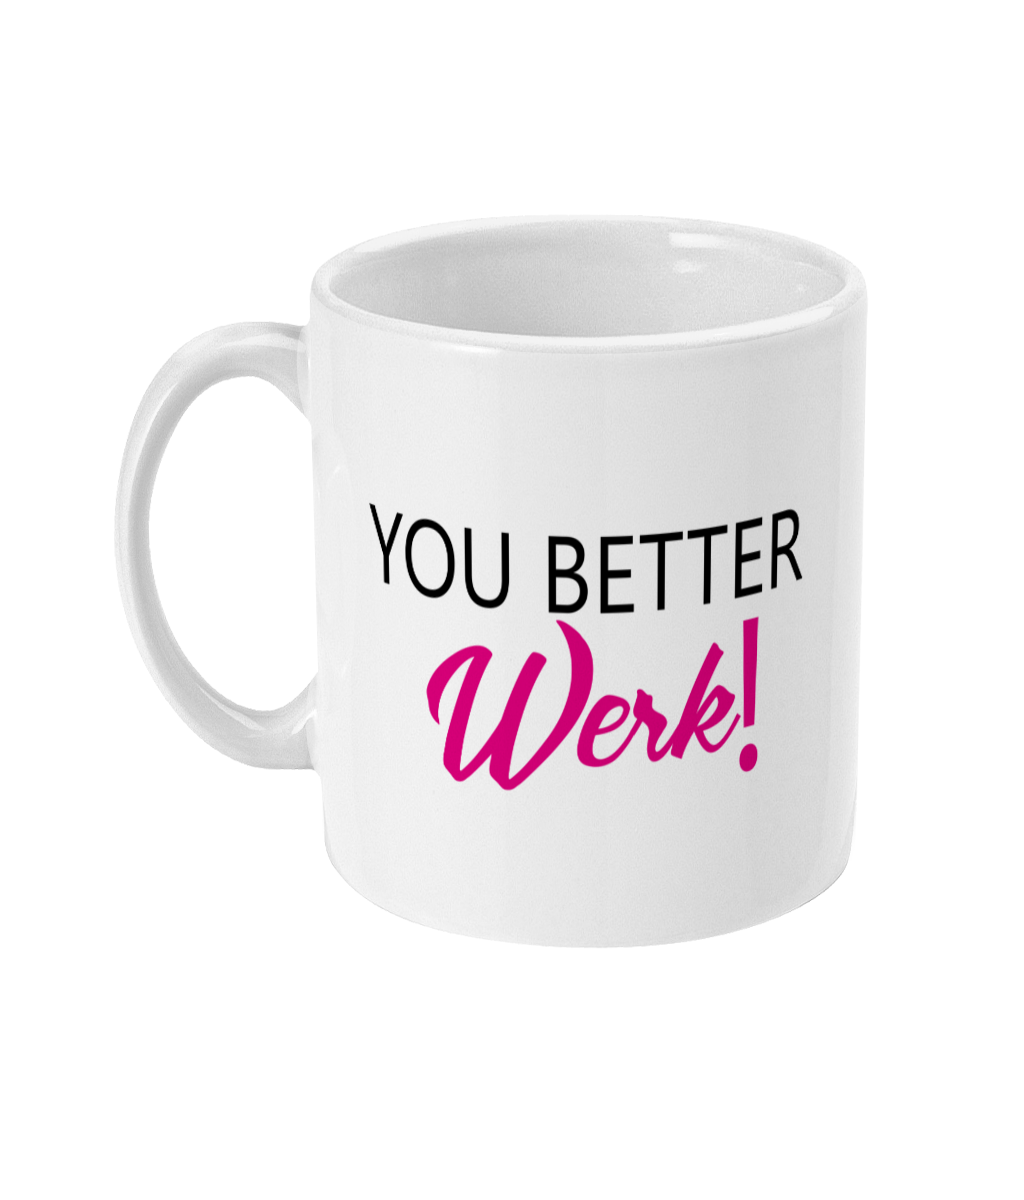 You Better Werk! Mug